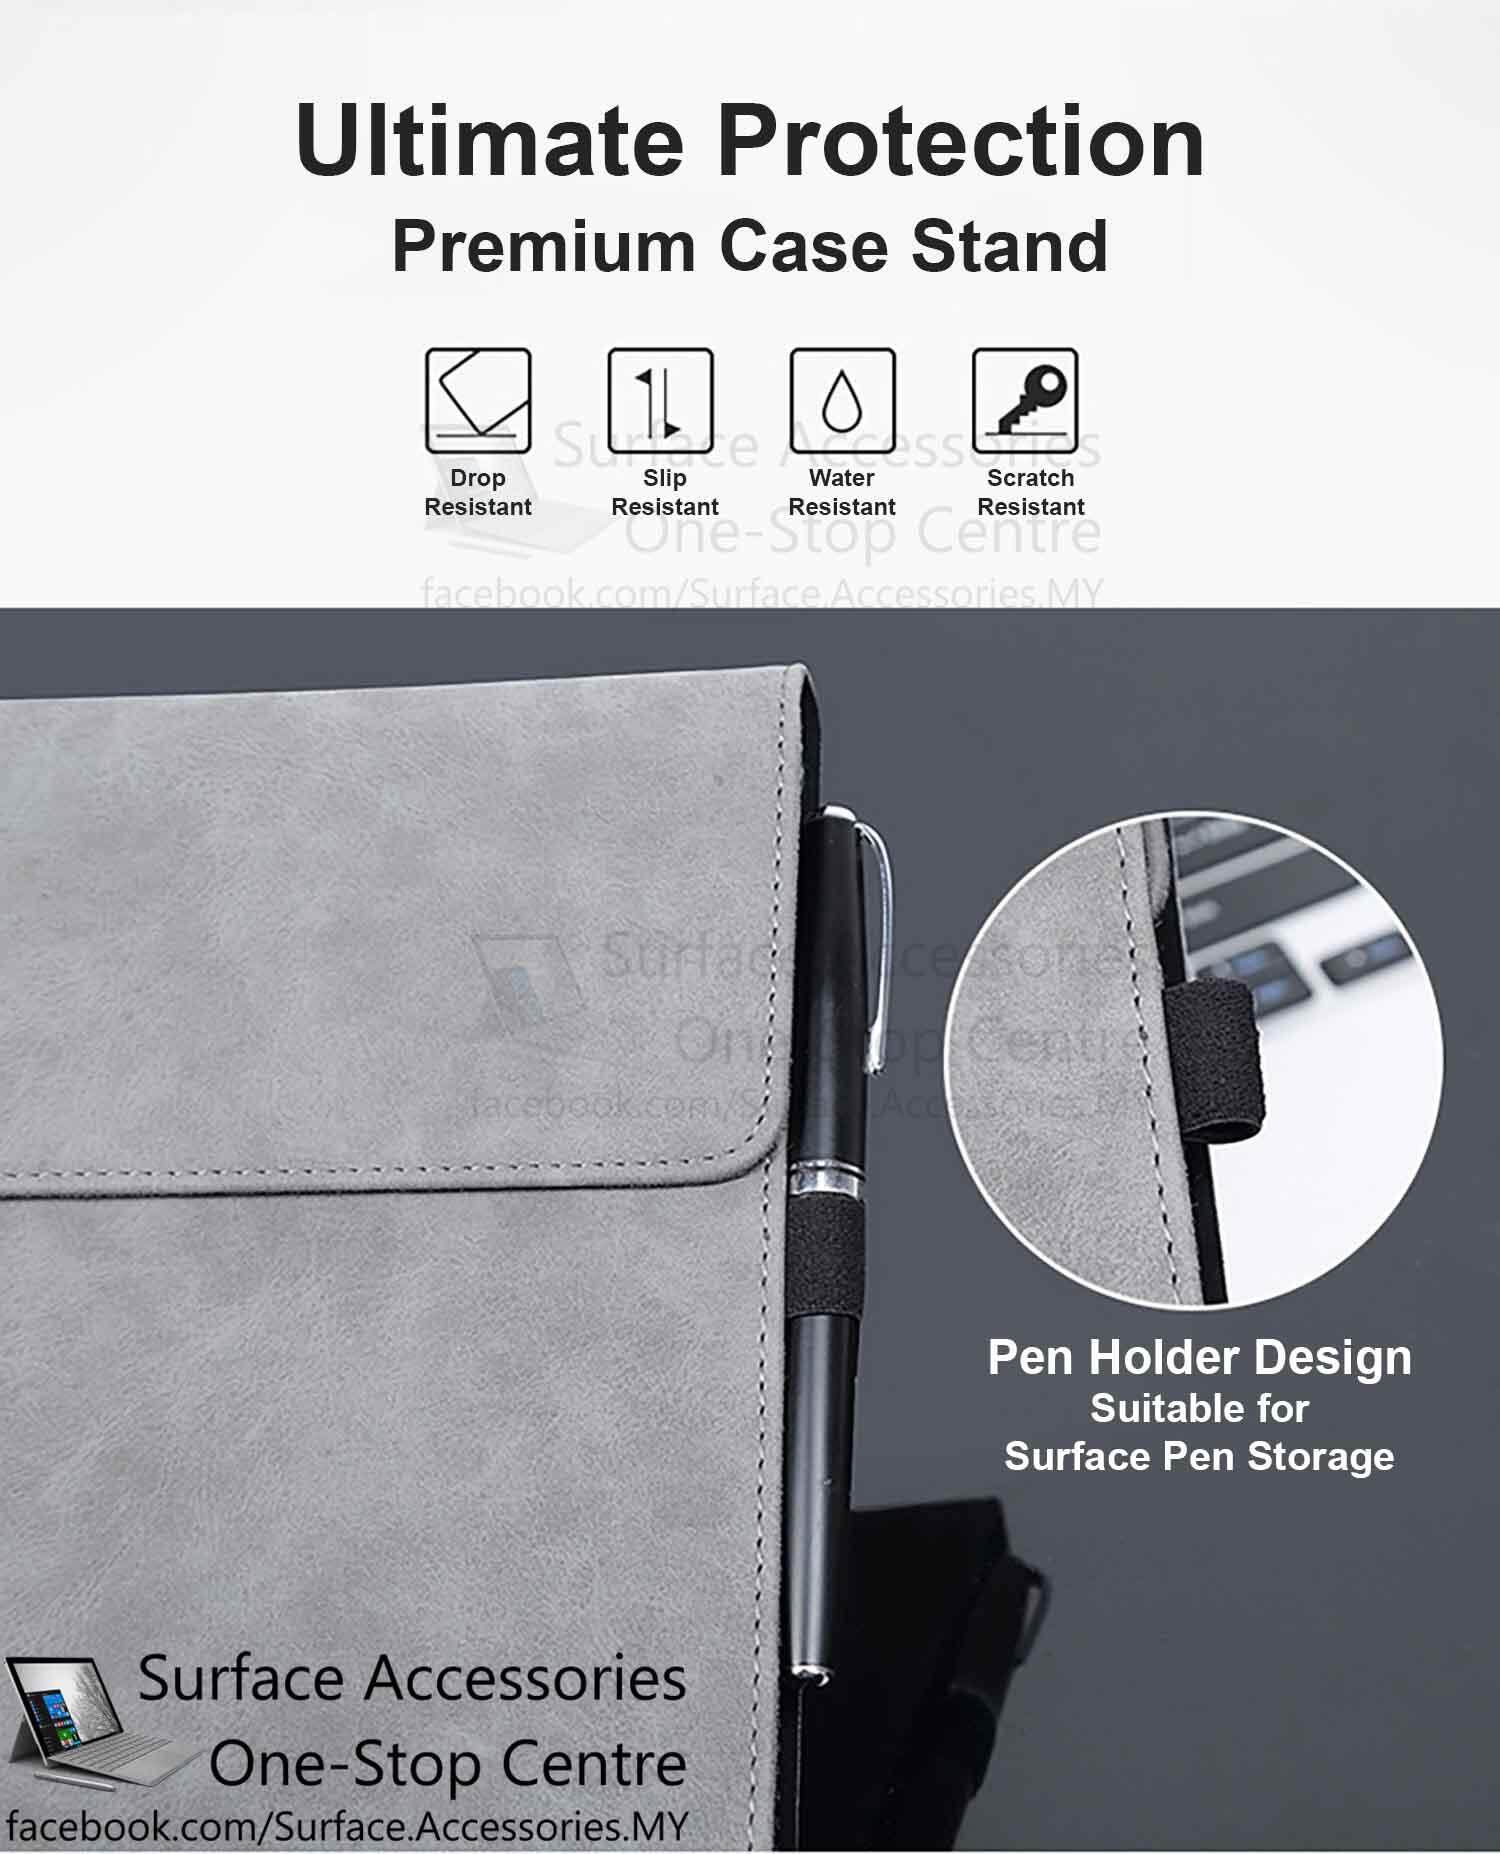 [MALAYSIA]Microsoft Surface Pro 6 Casing Surface Pro 6 Cover Premium Ultimate Case Stand Flip Case